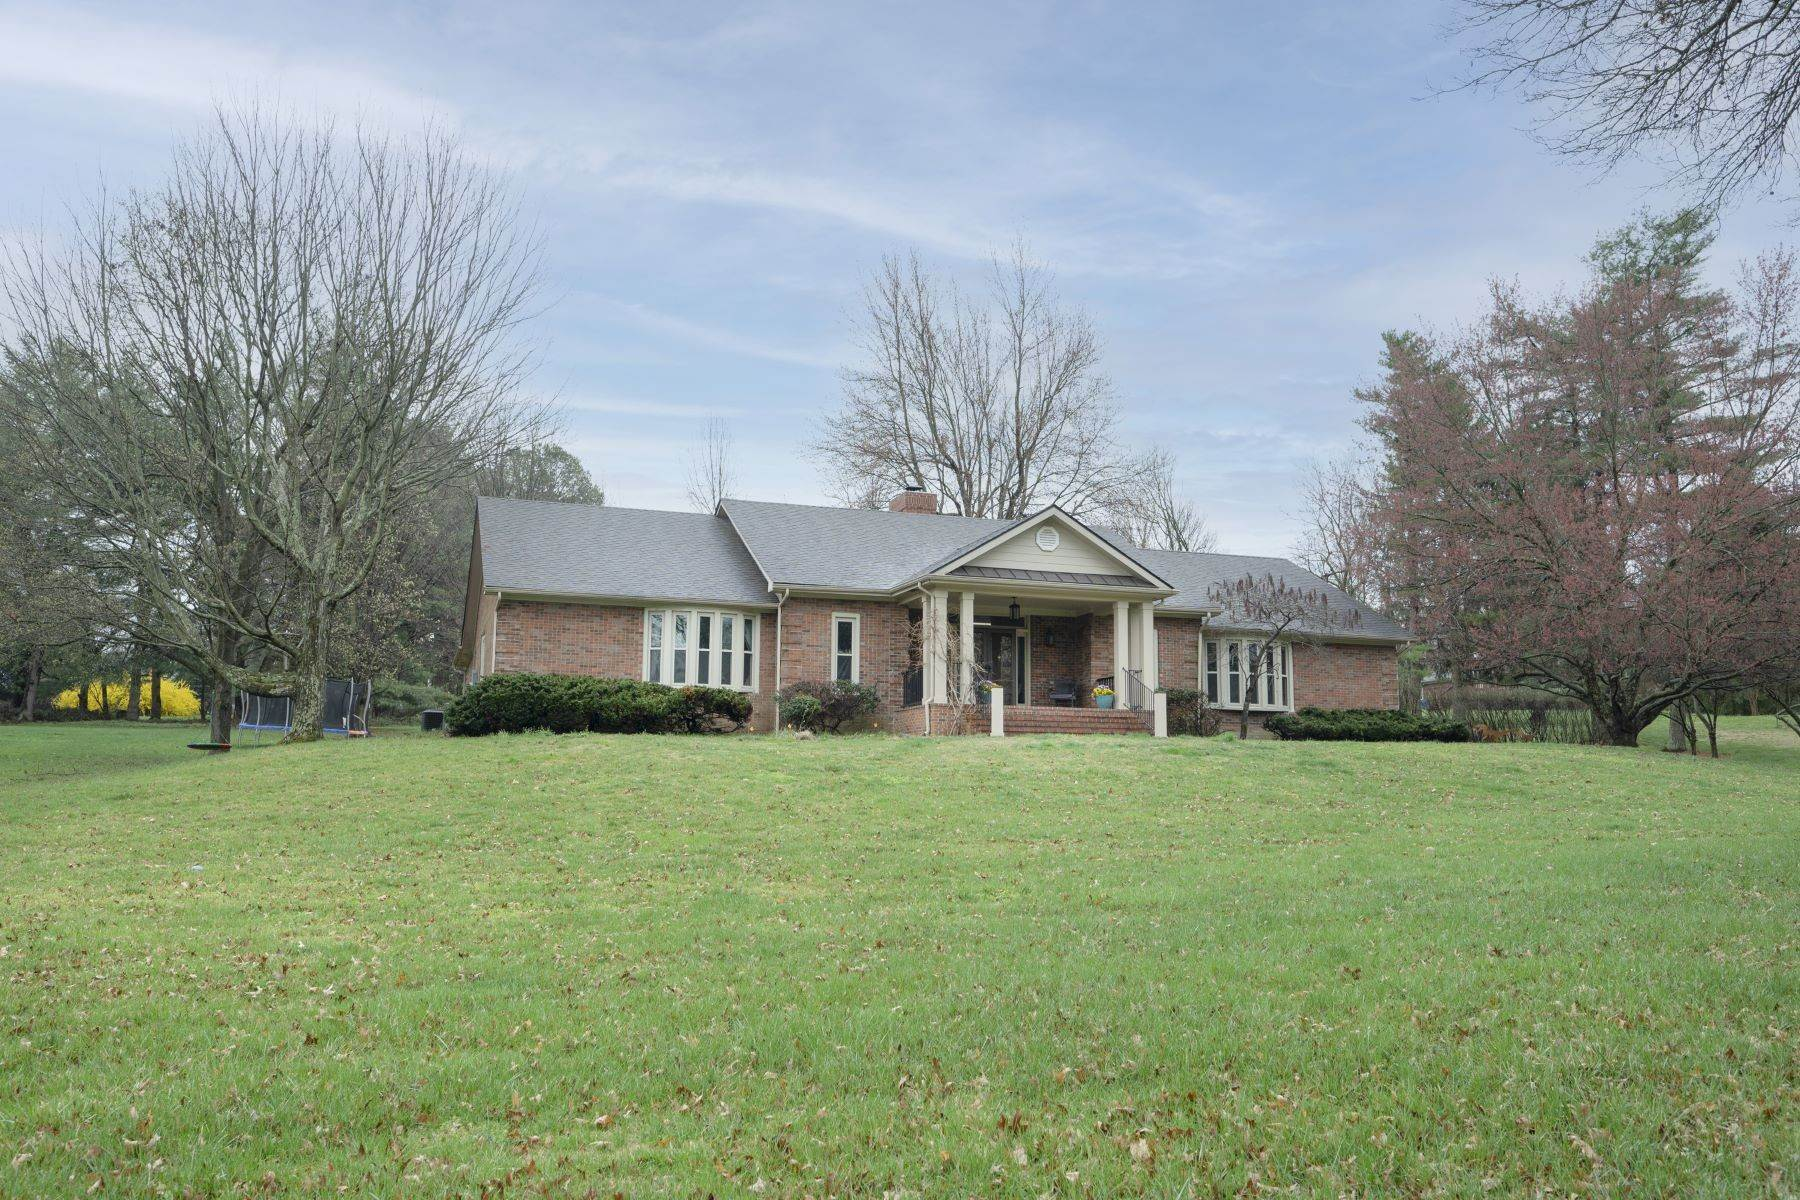 Single Family Homes for Sale at 2586 Edgehill Drive Lexington, Kentucky 40510 United States